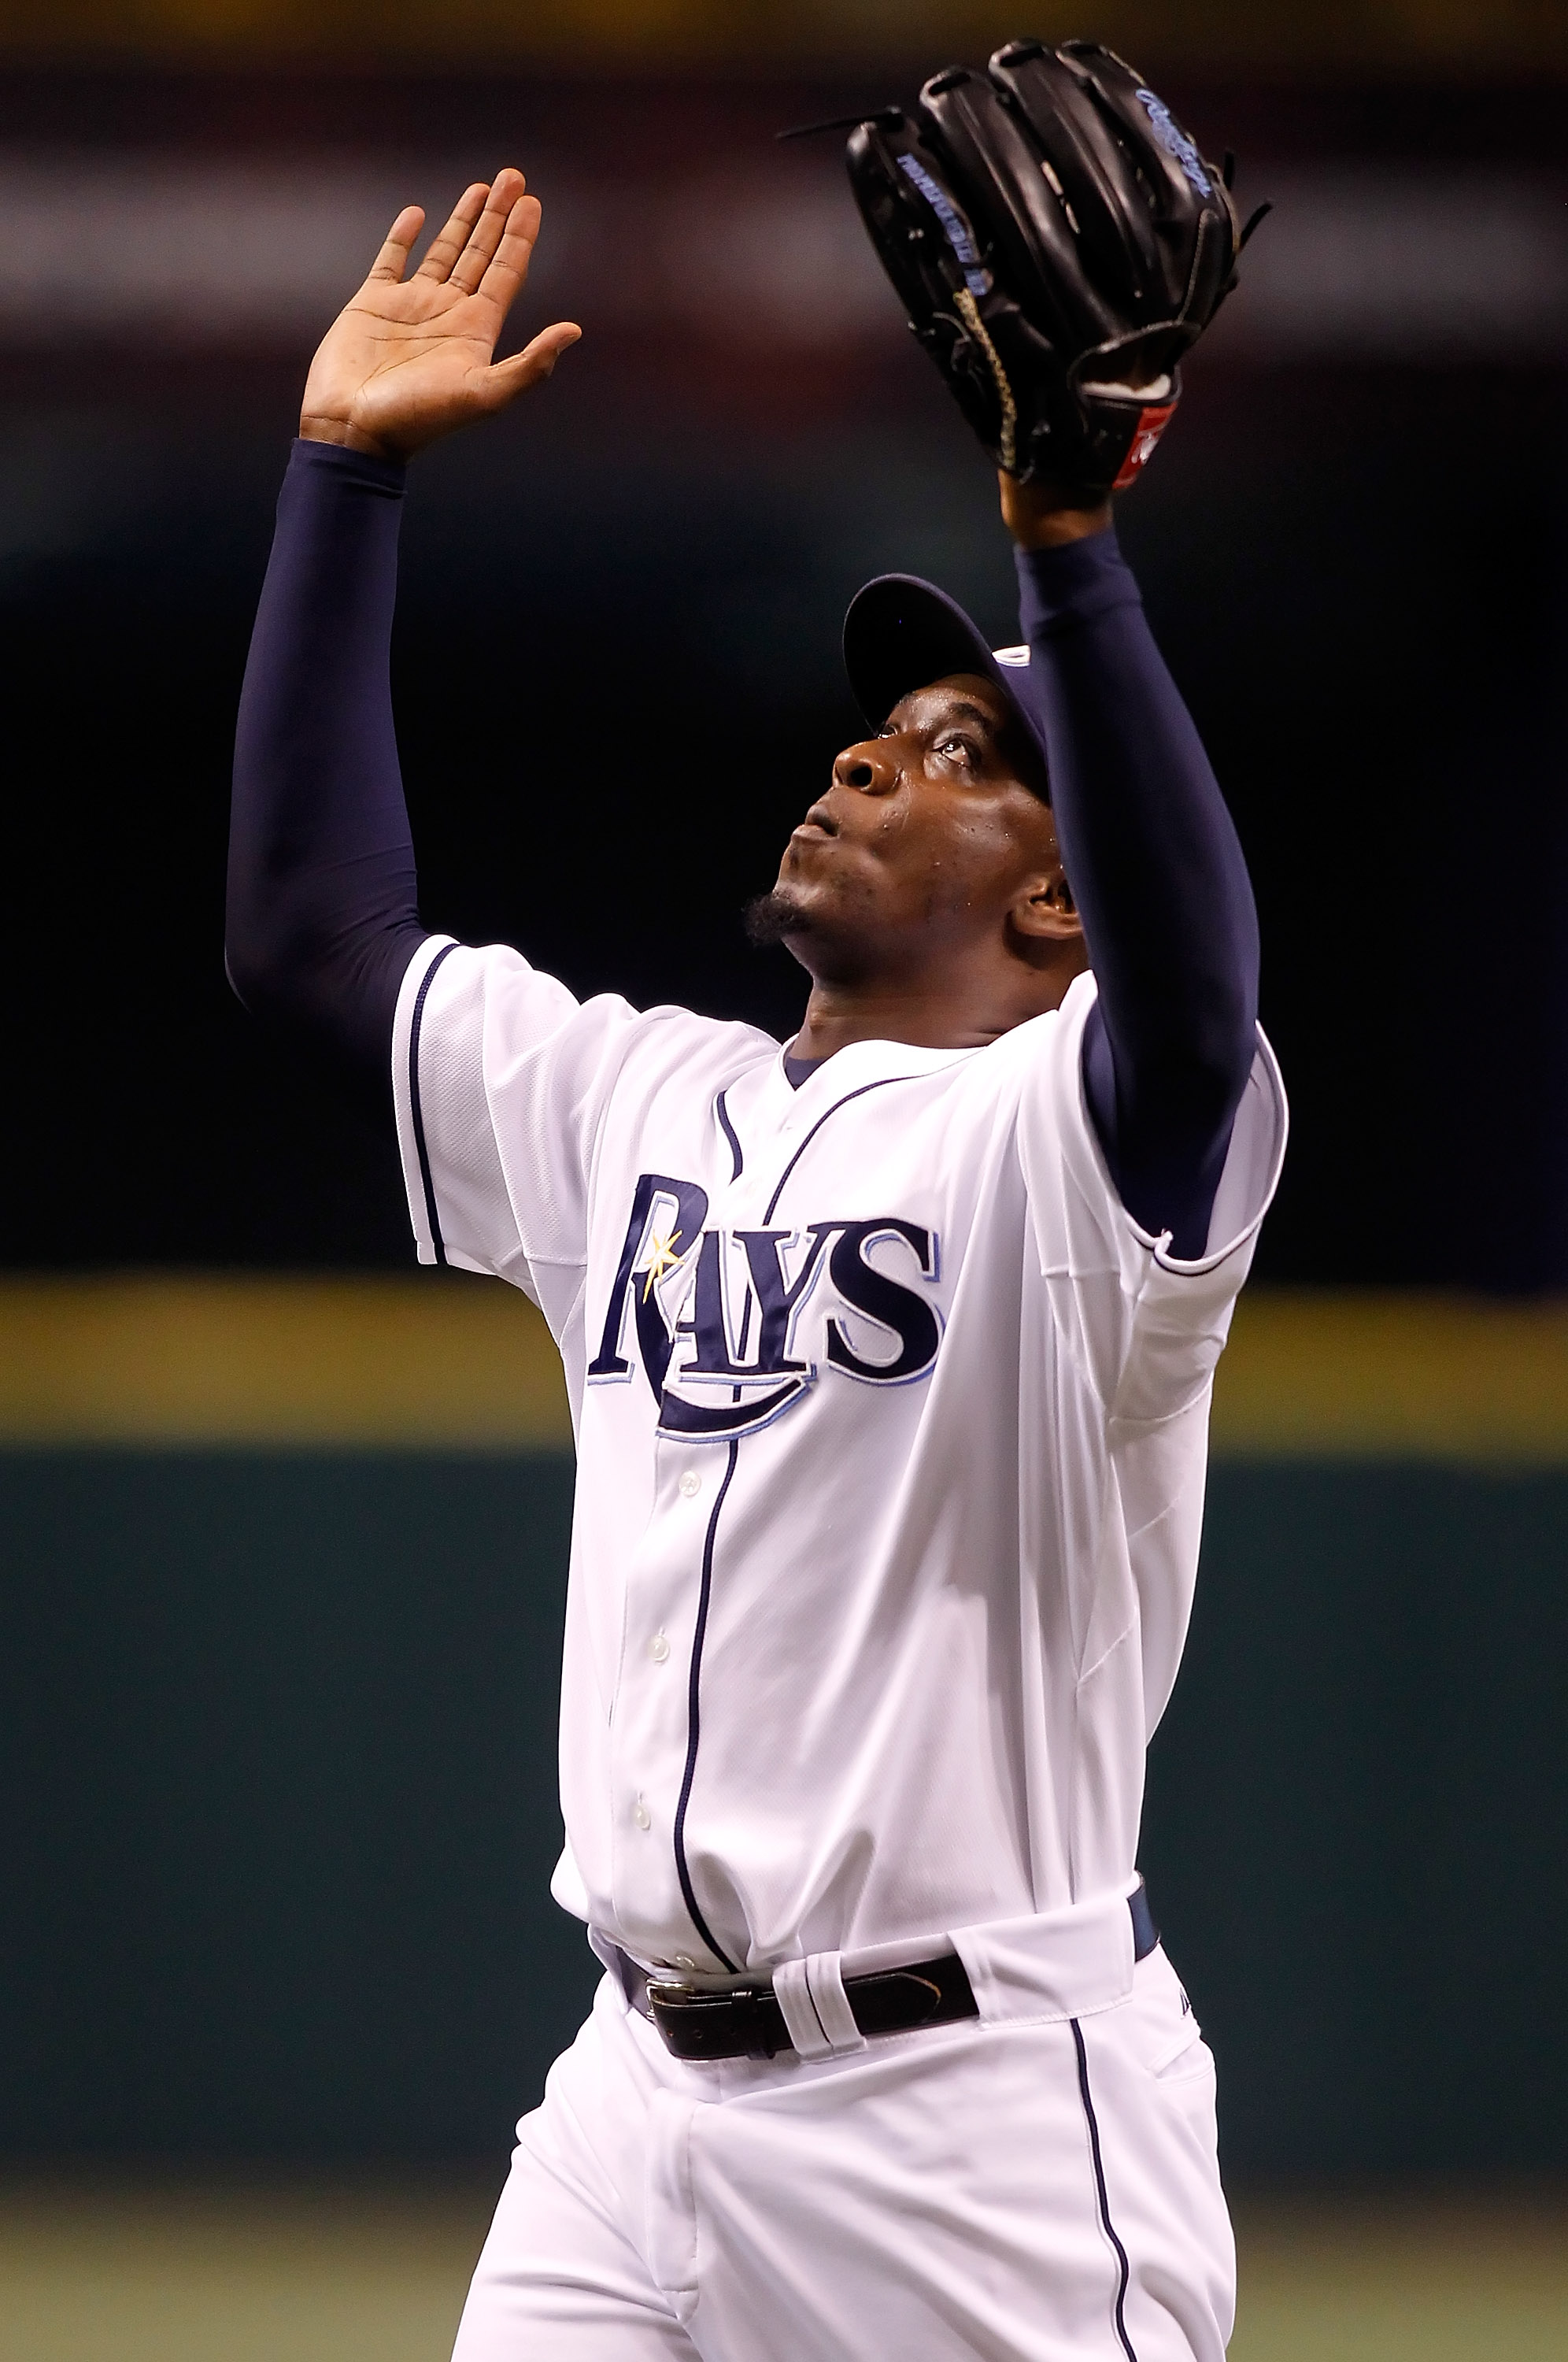 ST. PETERSBURG - SEPTEMBER 24:  Relief pitcher Rafael Soriano #29 of the Tampa Bay Rays celebrates his team record 44th save against the Seattle Mariners at Tropicana Field on September 24, 2010 in St. Petersburg, Florida. Tampa Bay beat the Seattle Marin